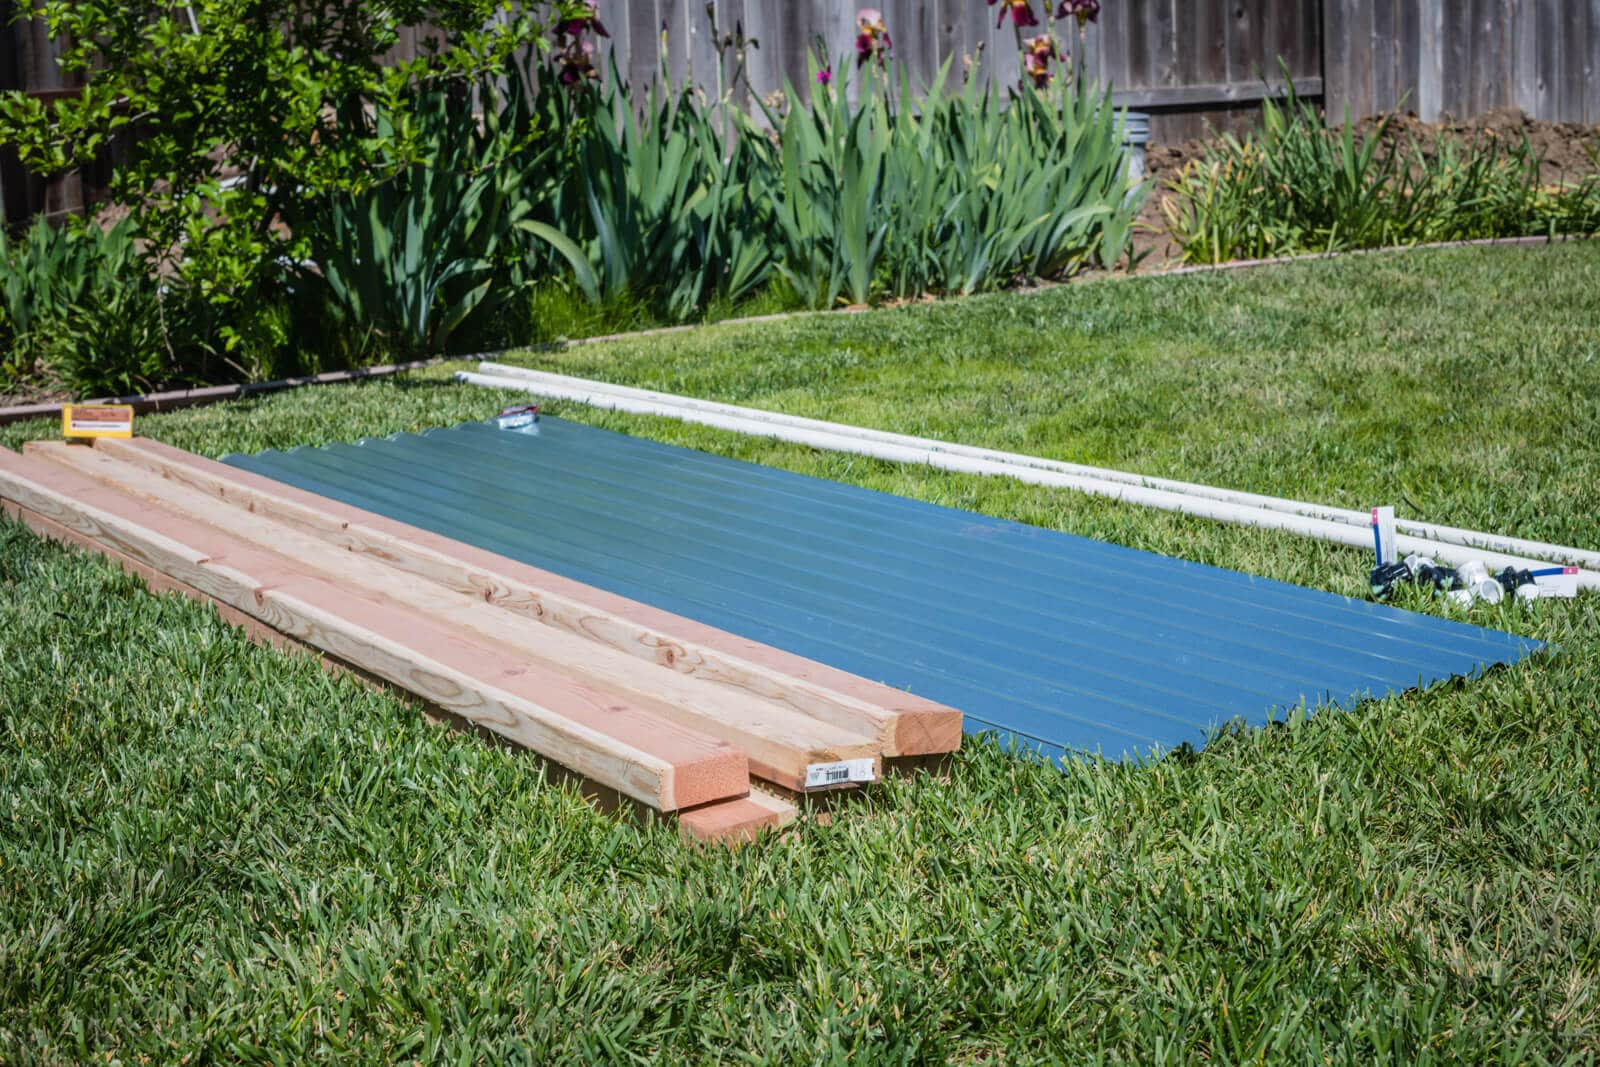 Putting the raised metal garden bed together